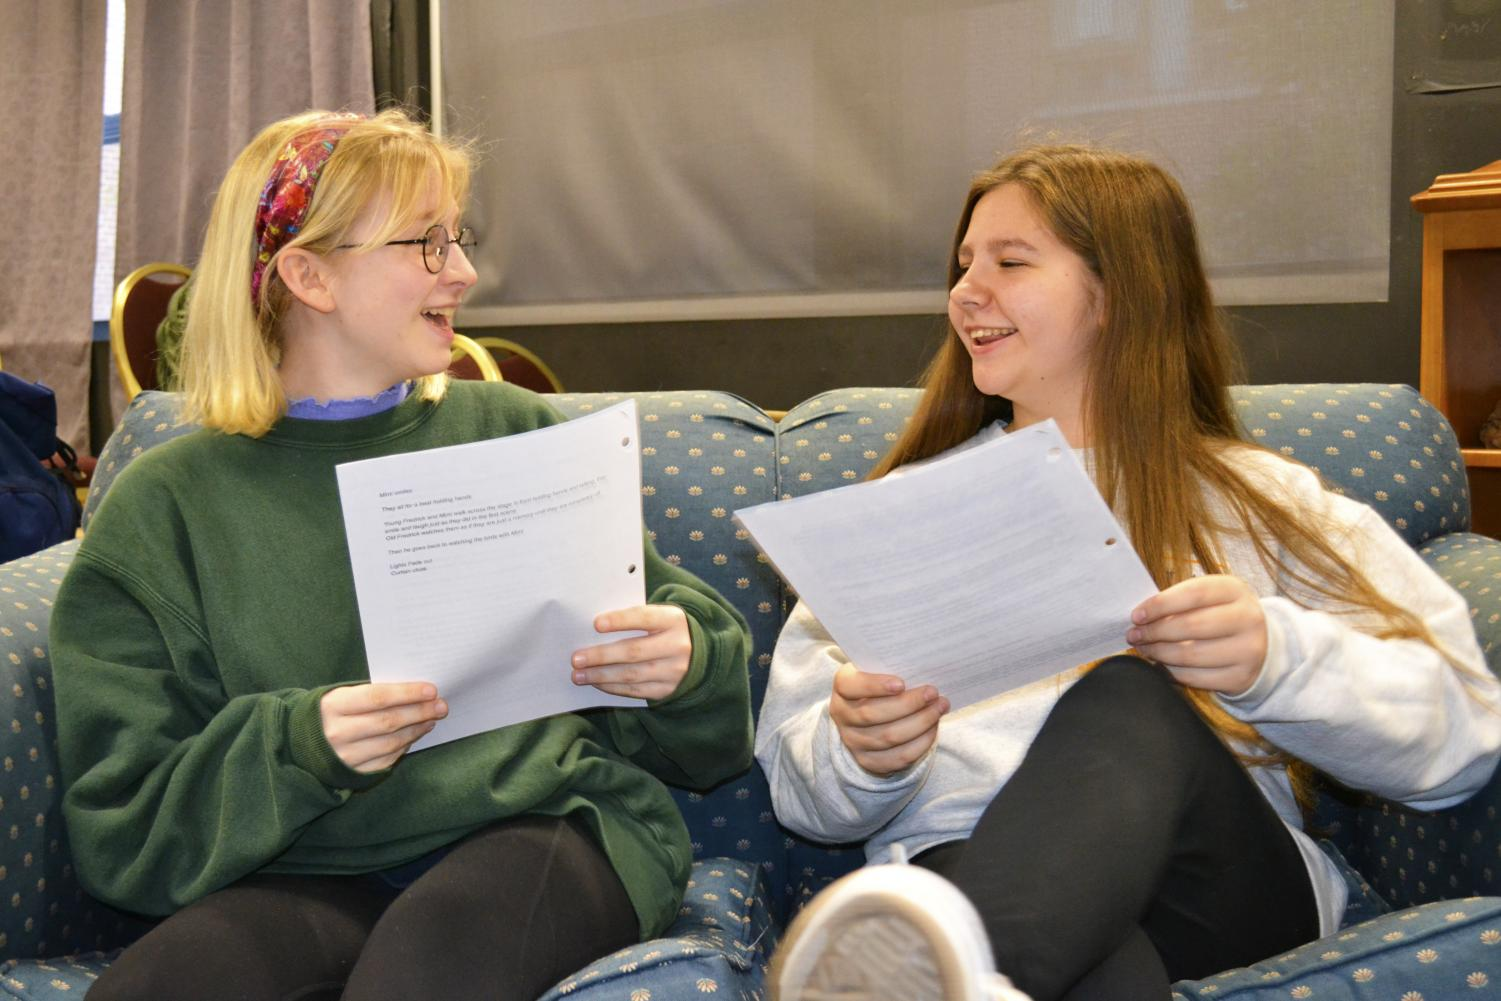 Macy Major and Abby Mesick discuss ideas about their scripts.